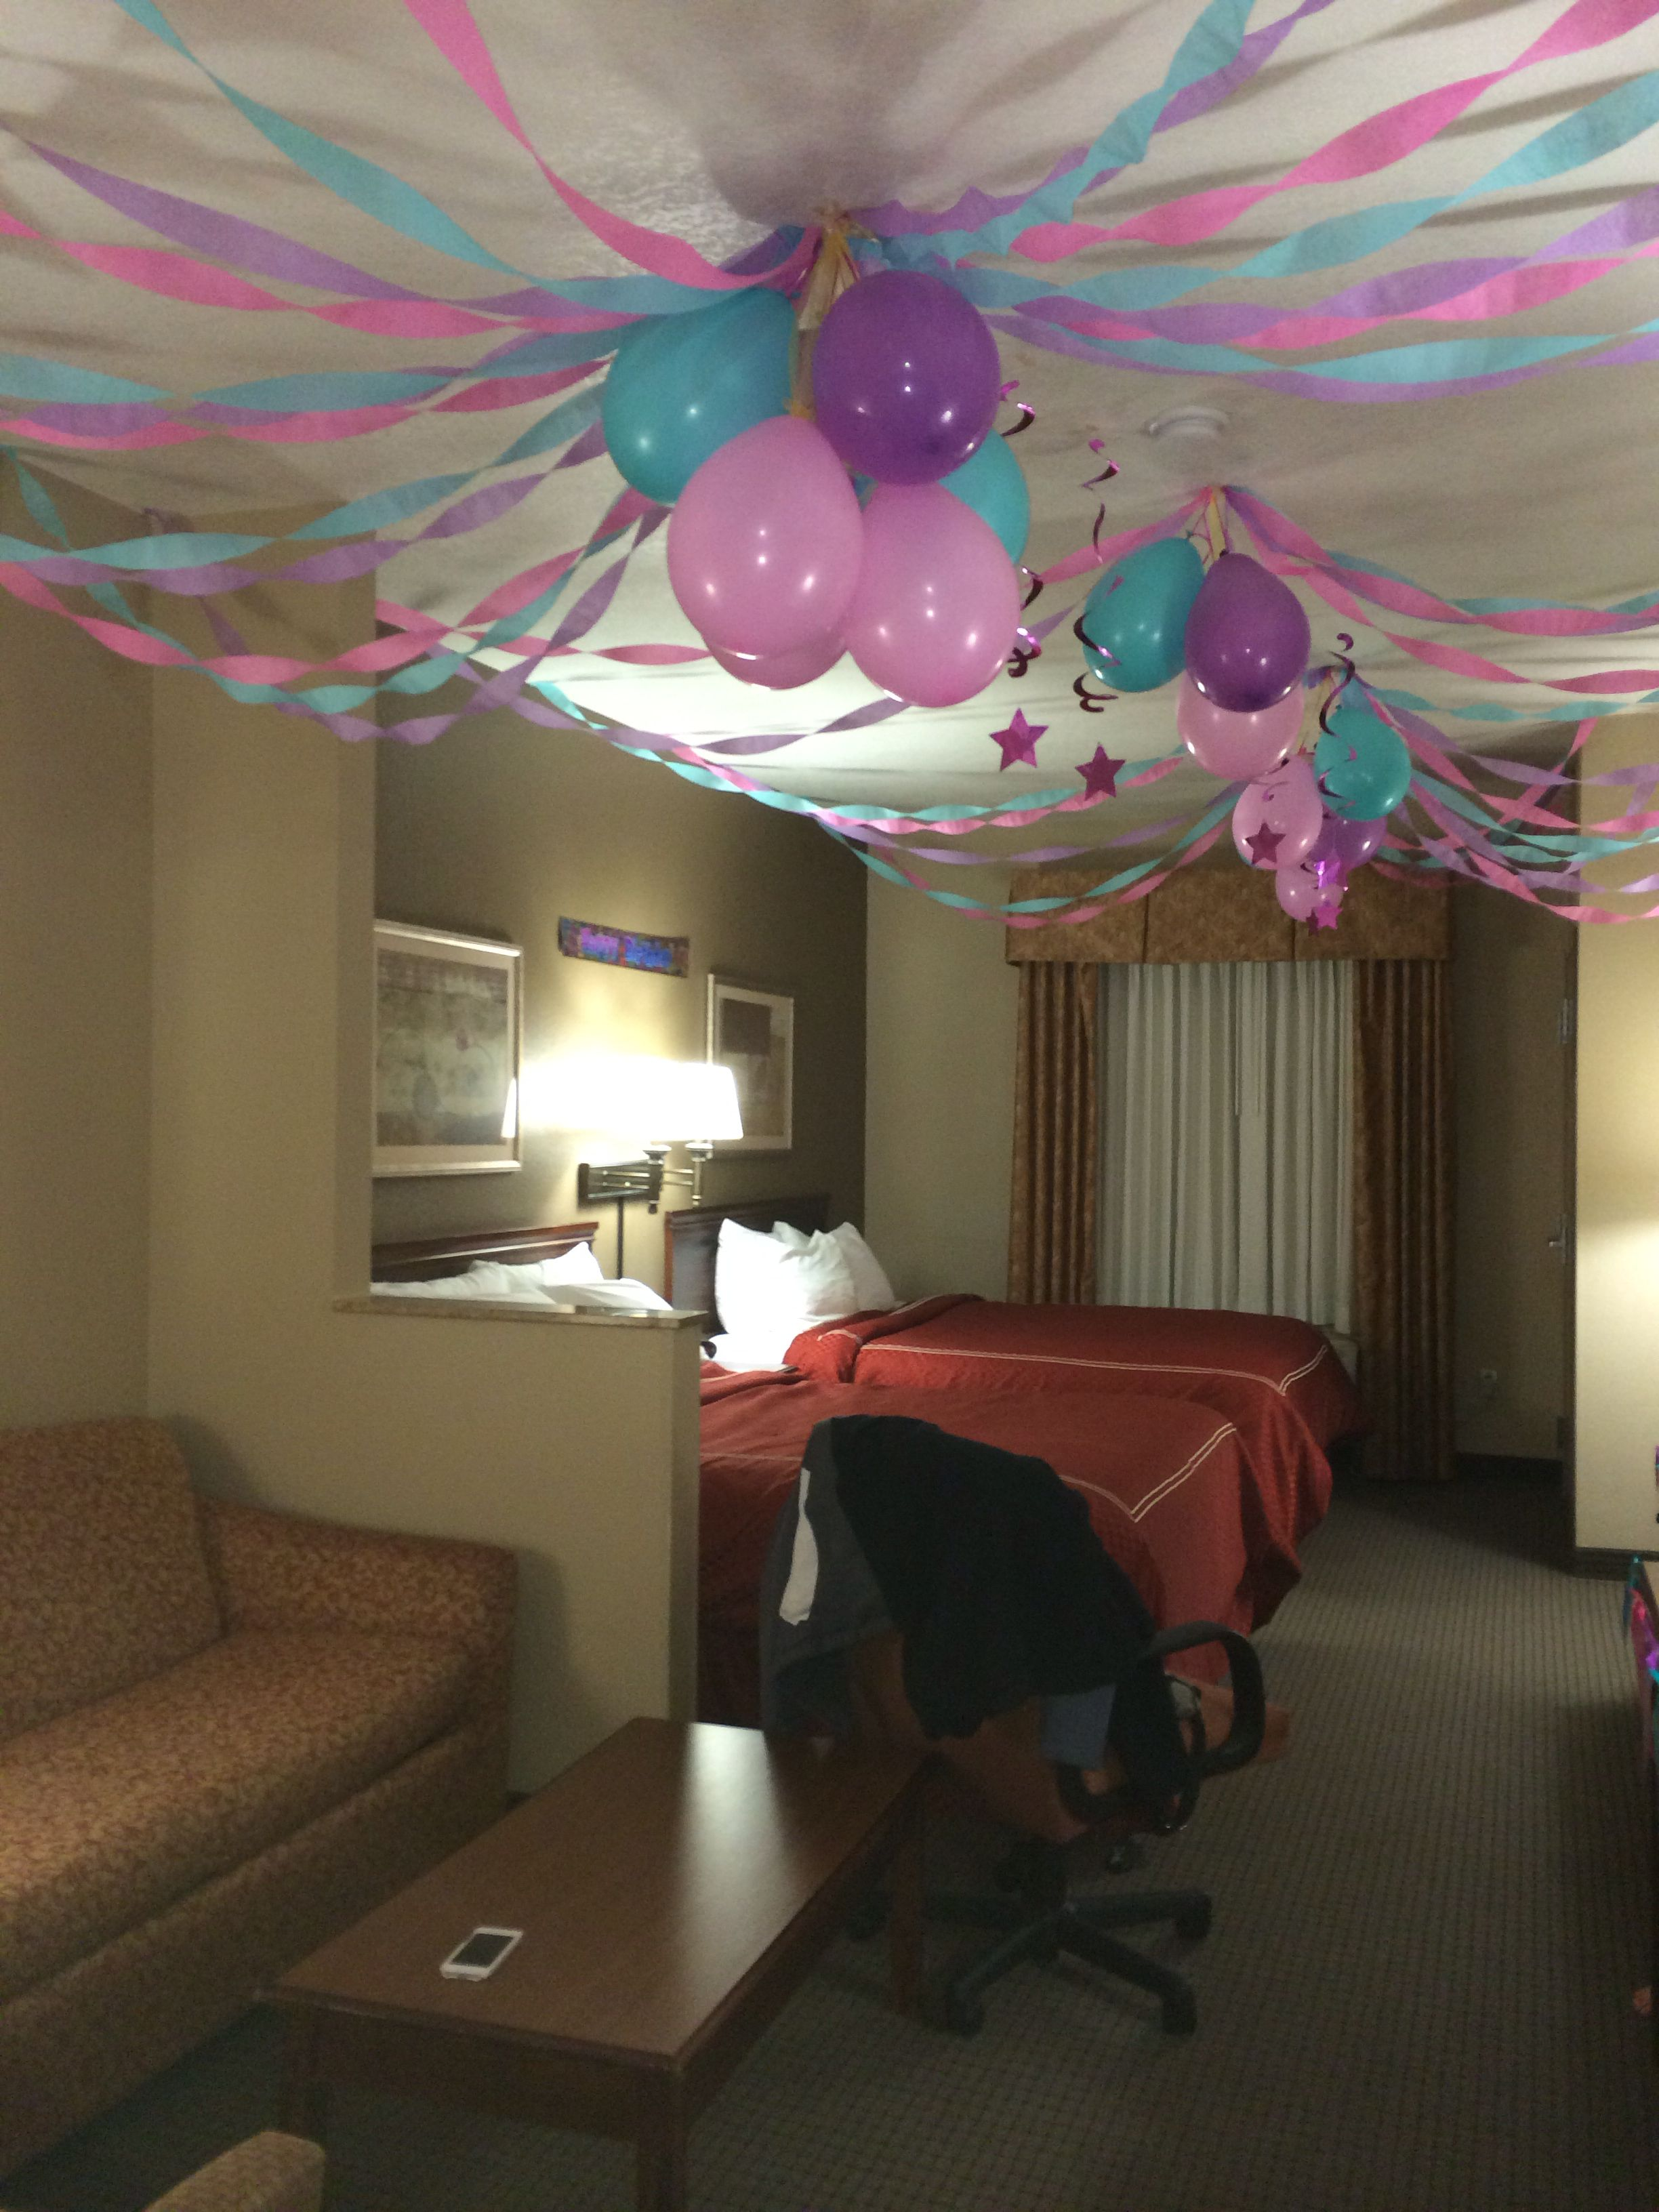 Decoration Hotel Birthday Party In A Hotel Room Invertedballons Streamers